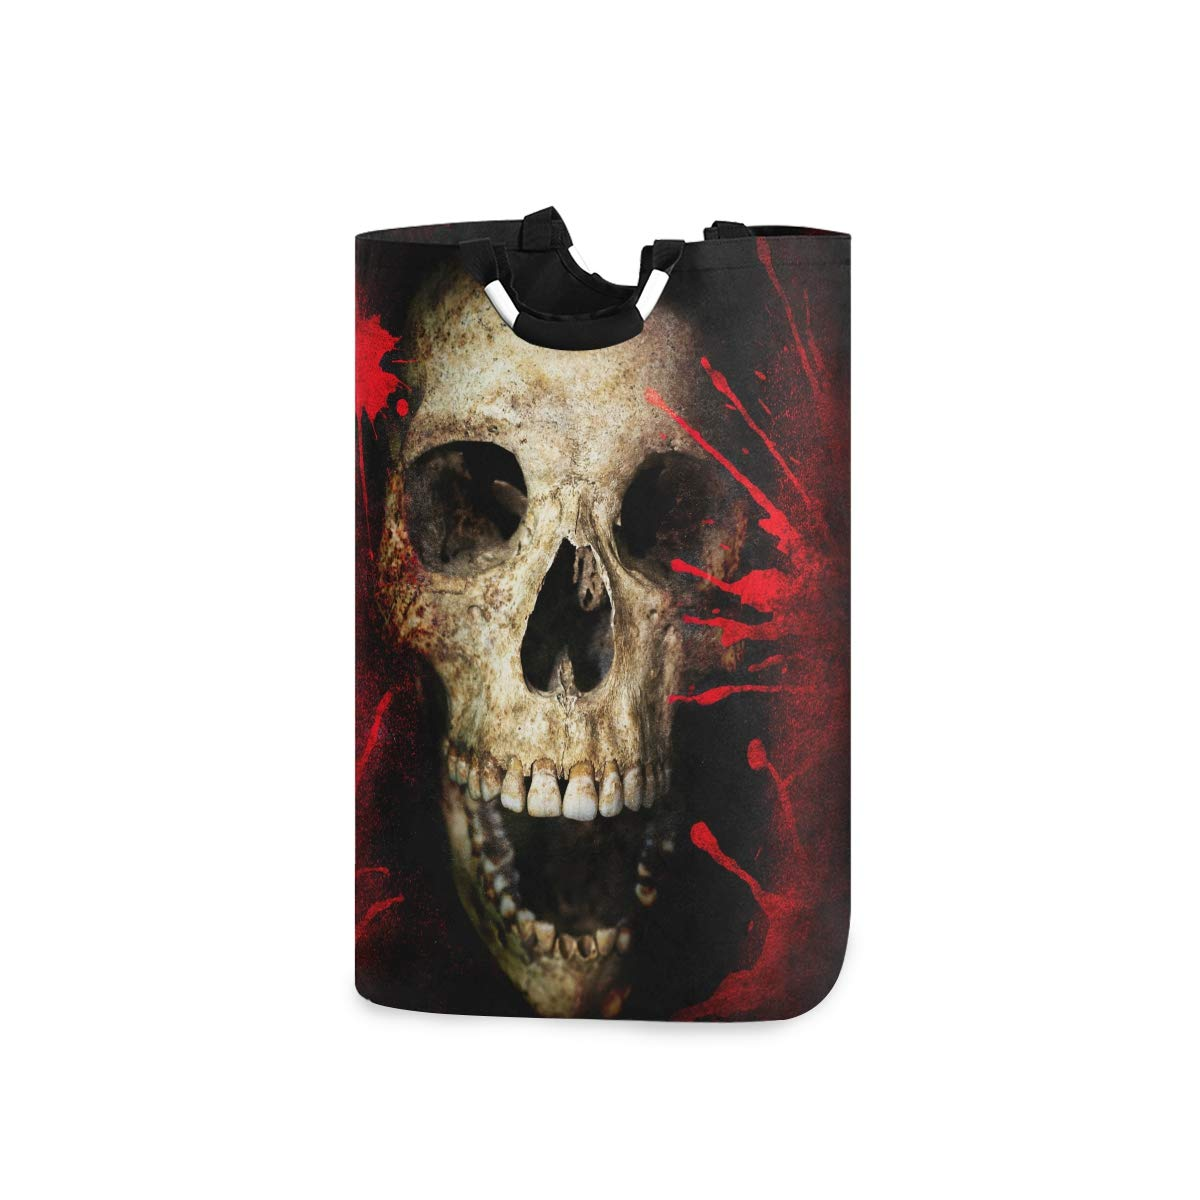 DOMIKING Laundry Storage Basket Skull and Blood Vintage Style Laundry Hamper Collapsible Organizer for Kids Room Dirty Cloth Toy Dorm Bag with Handle